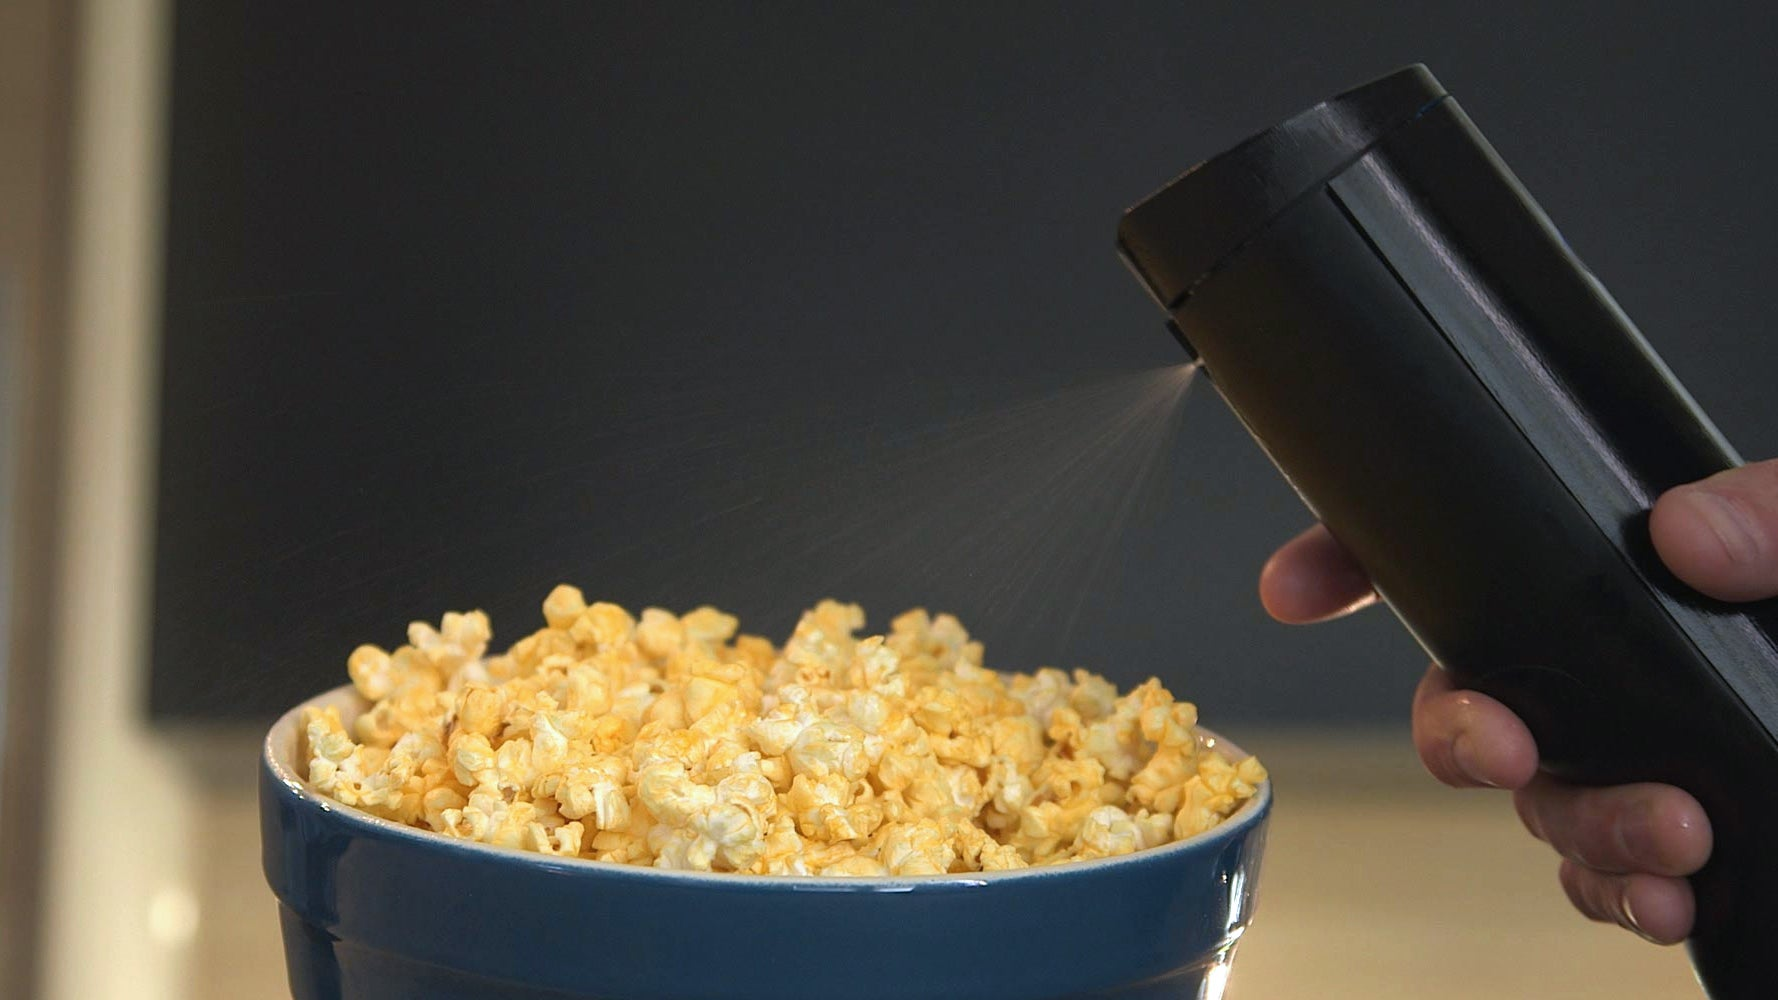 This Kitchen Tool Turns Sticks of Butter Into Sprayable Deliciousness